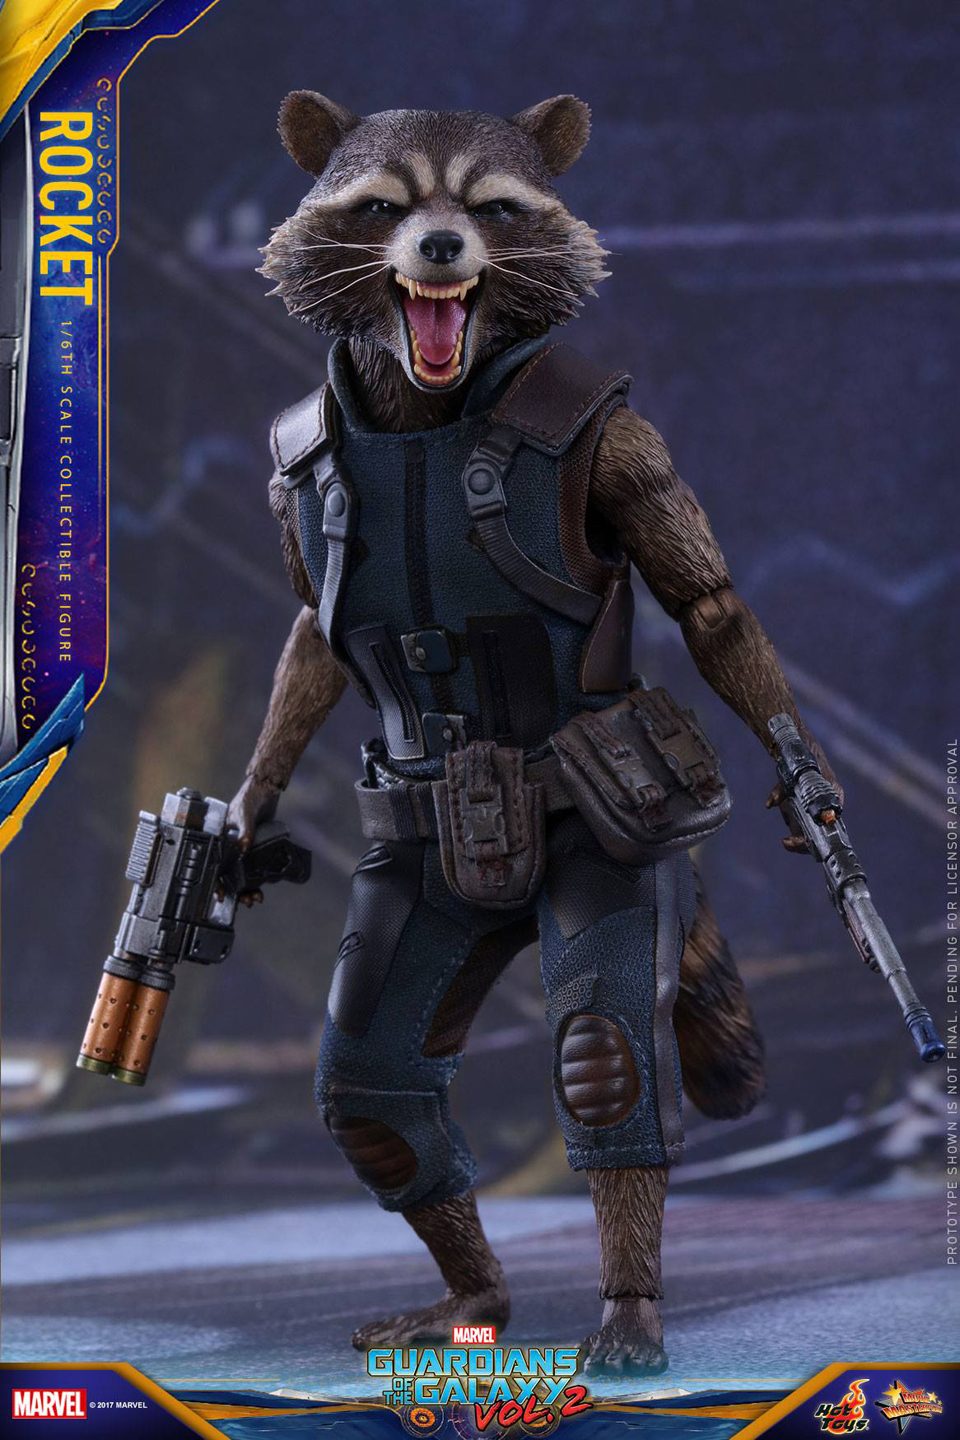 Hot Toys GotG Vol. 2 Rocket Raccoon 1/6 Scale Action ...